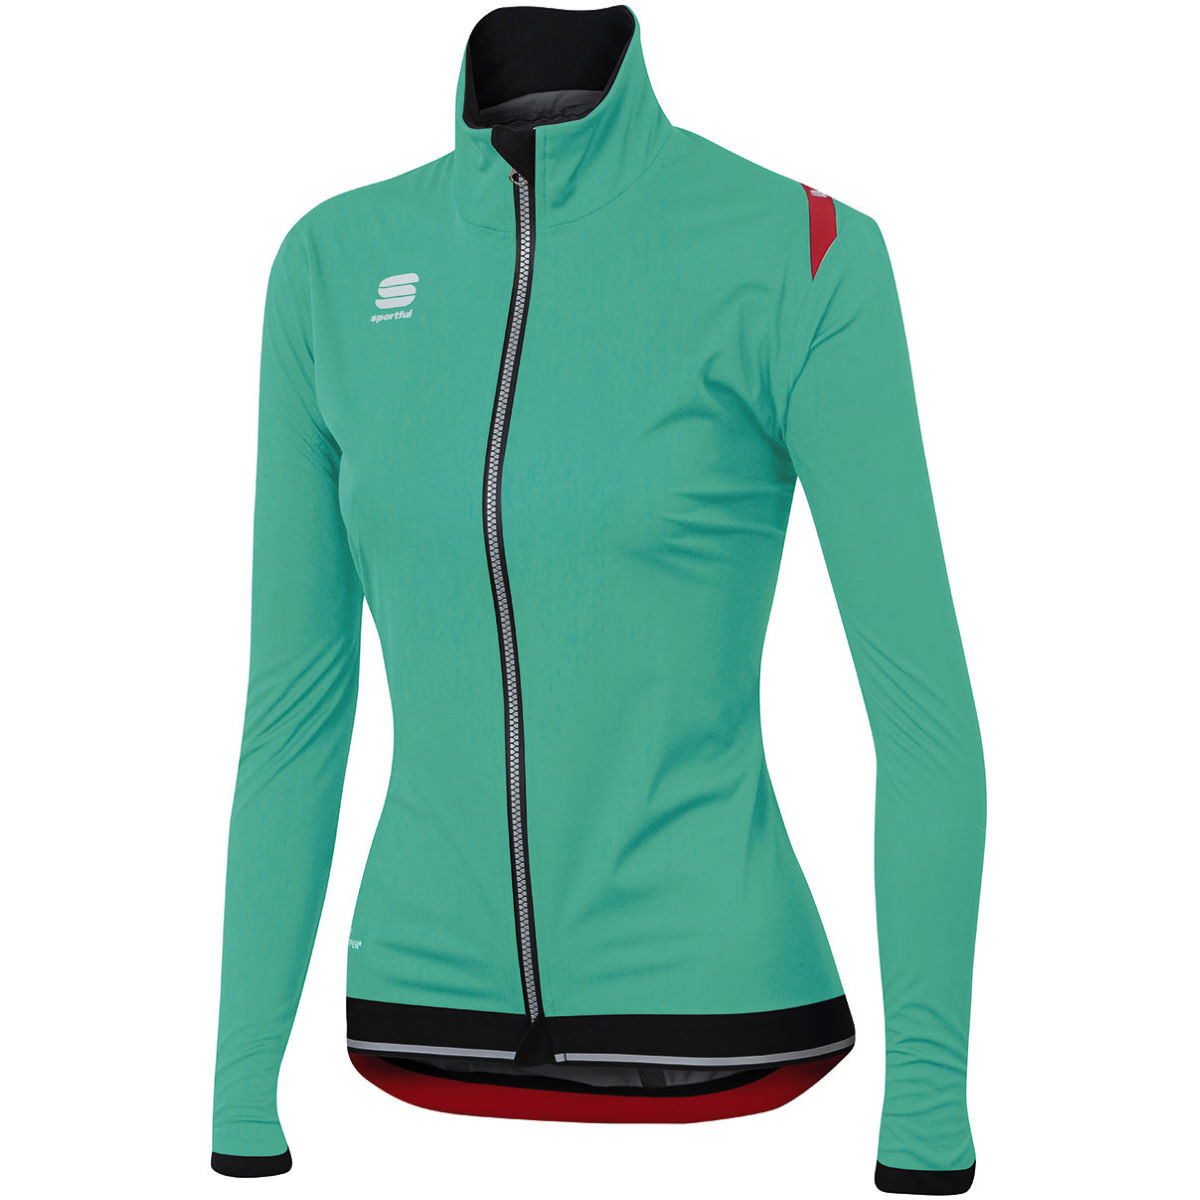 Veste Femme Sportful Fiandre Ultimate Windstopper - M Vestes